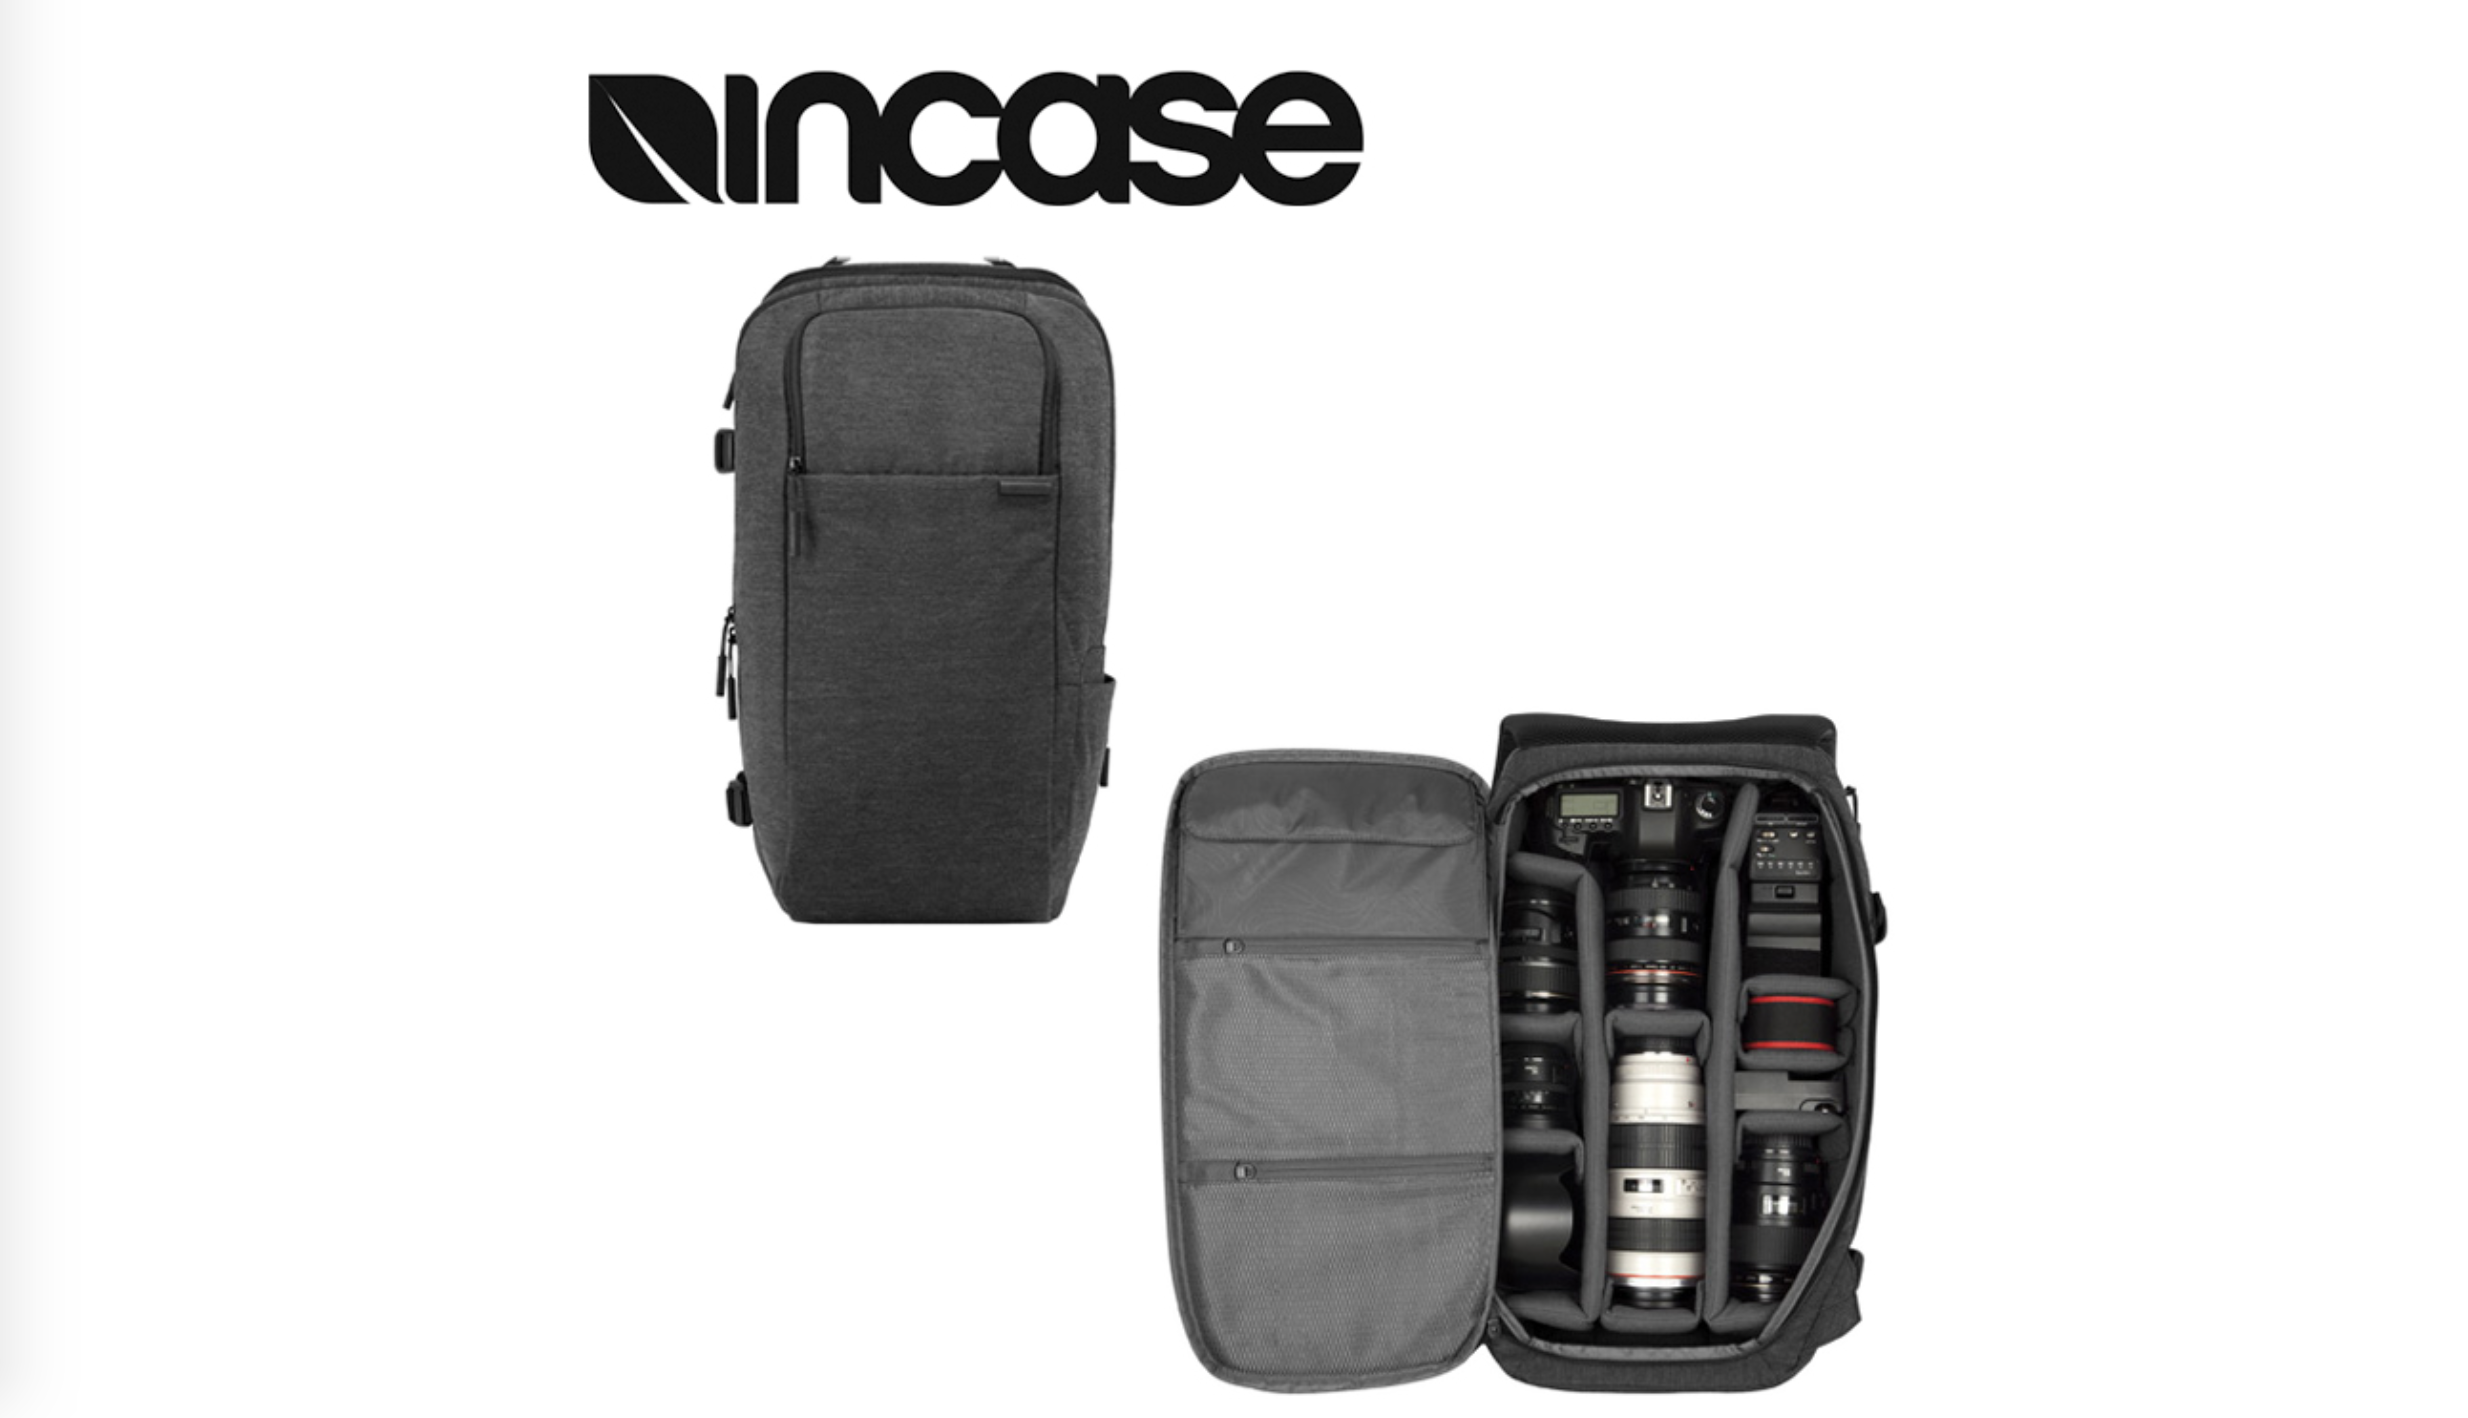 Incipio's expansion continues with Incase acquisition